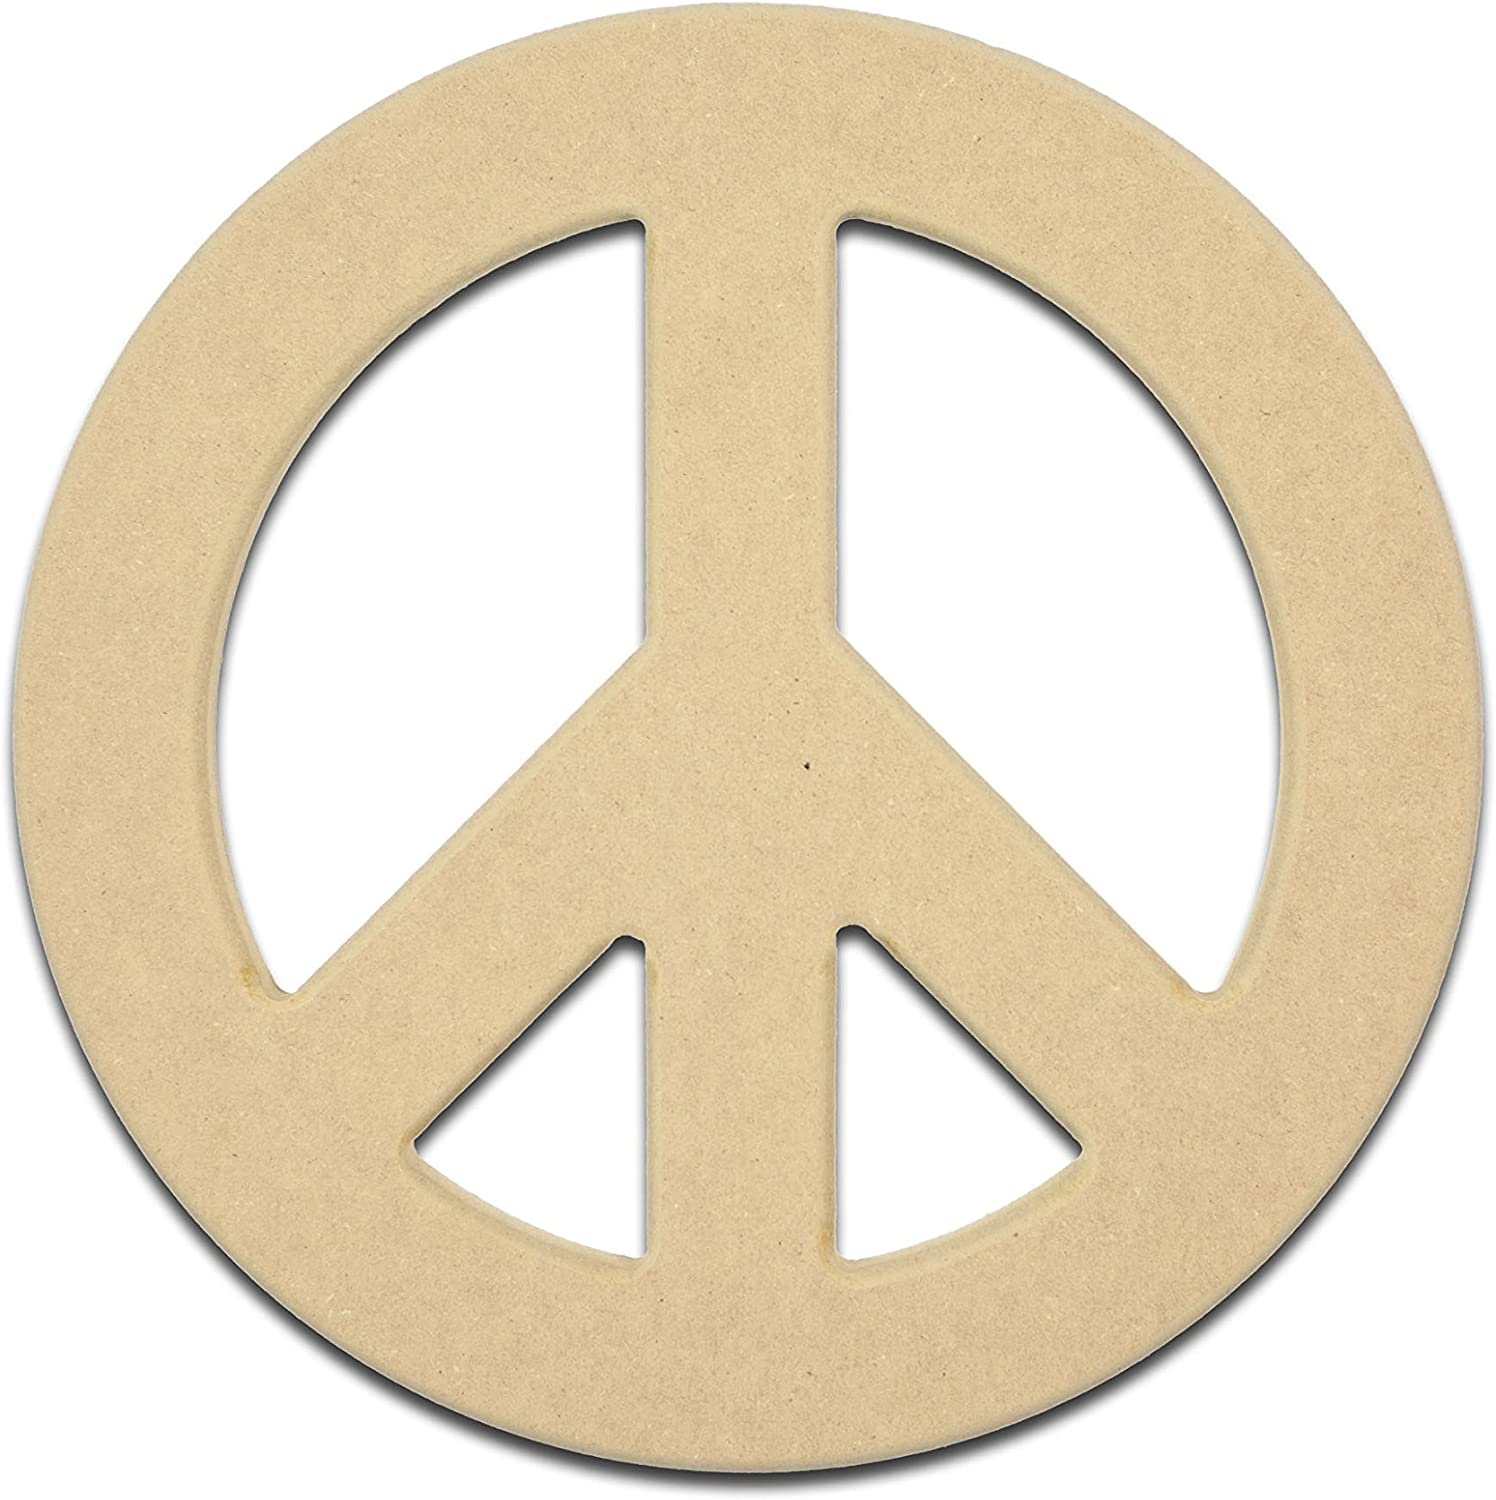 Gocutouts 6 Wooden Peace Sign Package of 12 Cutouts Shapes Wooden Peace Sign Cutouts 6 Package of 12